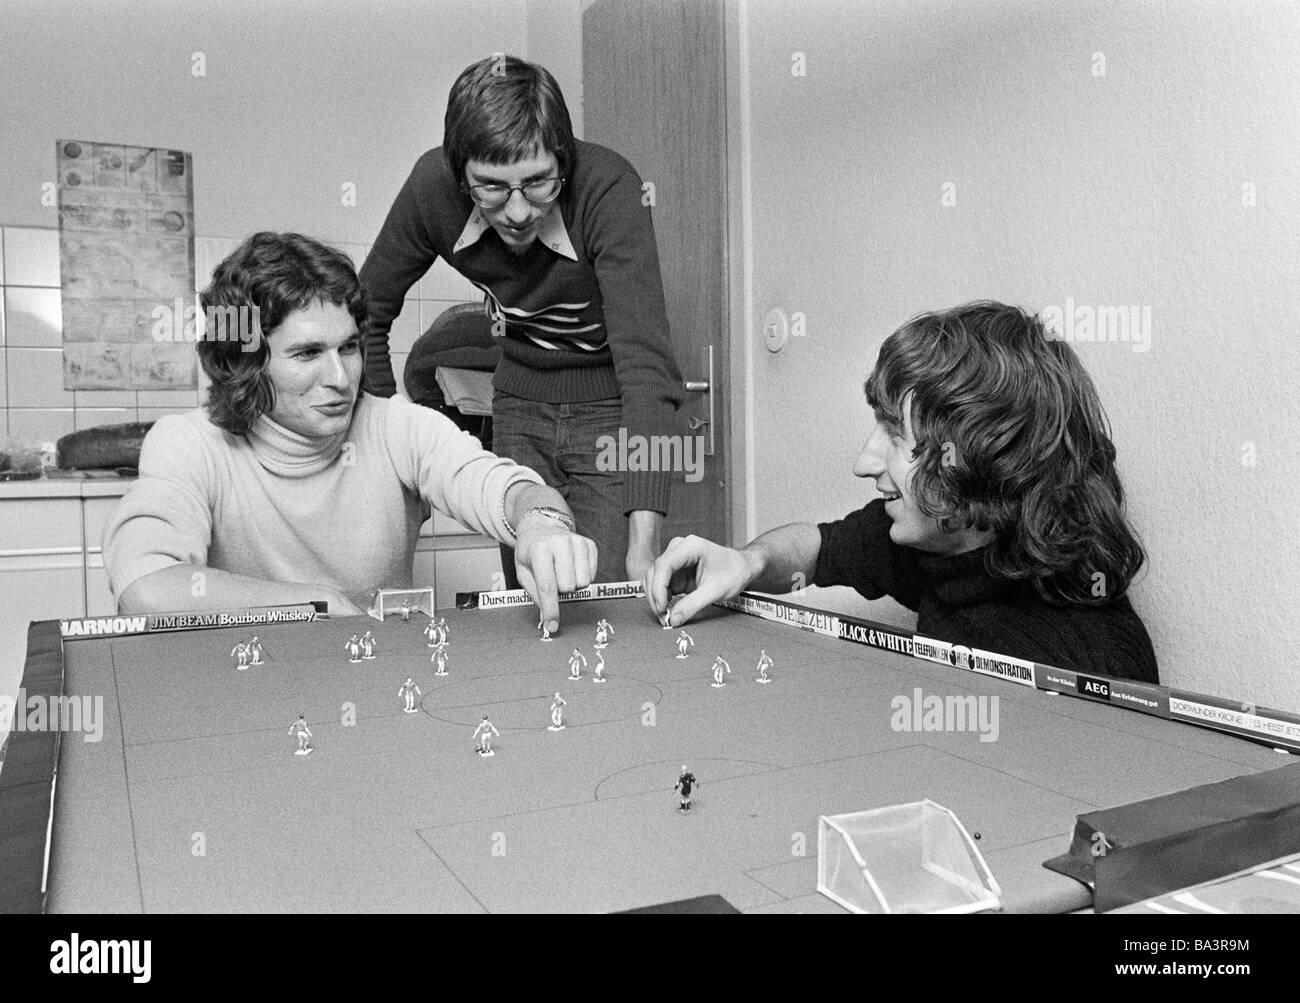 Seventies, black and white photo, people, three young men playing table football, freetime, hobby, long-haired, - Stock Image